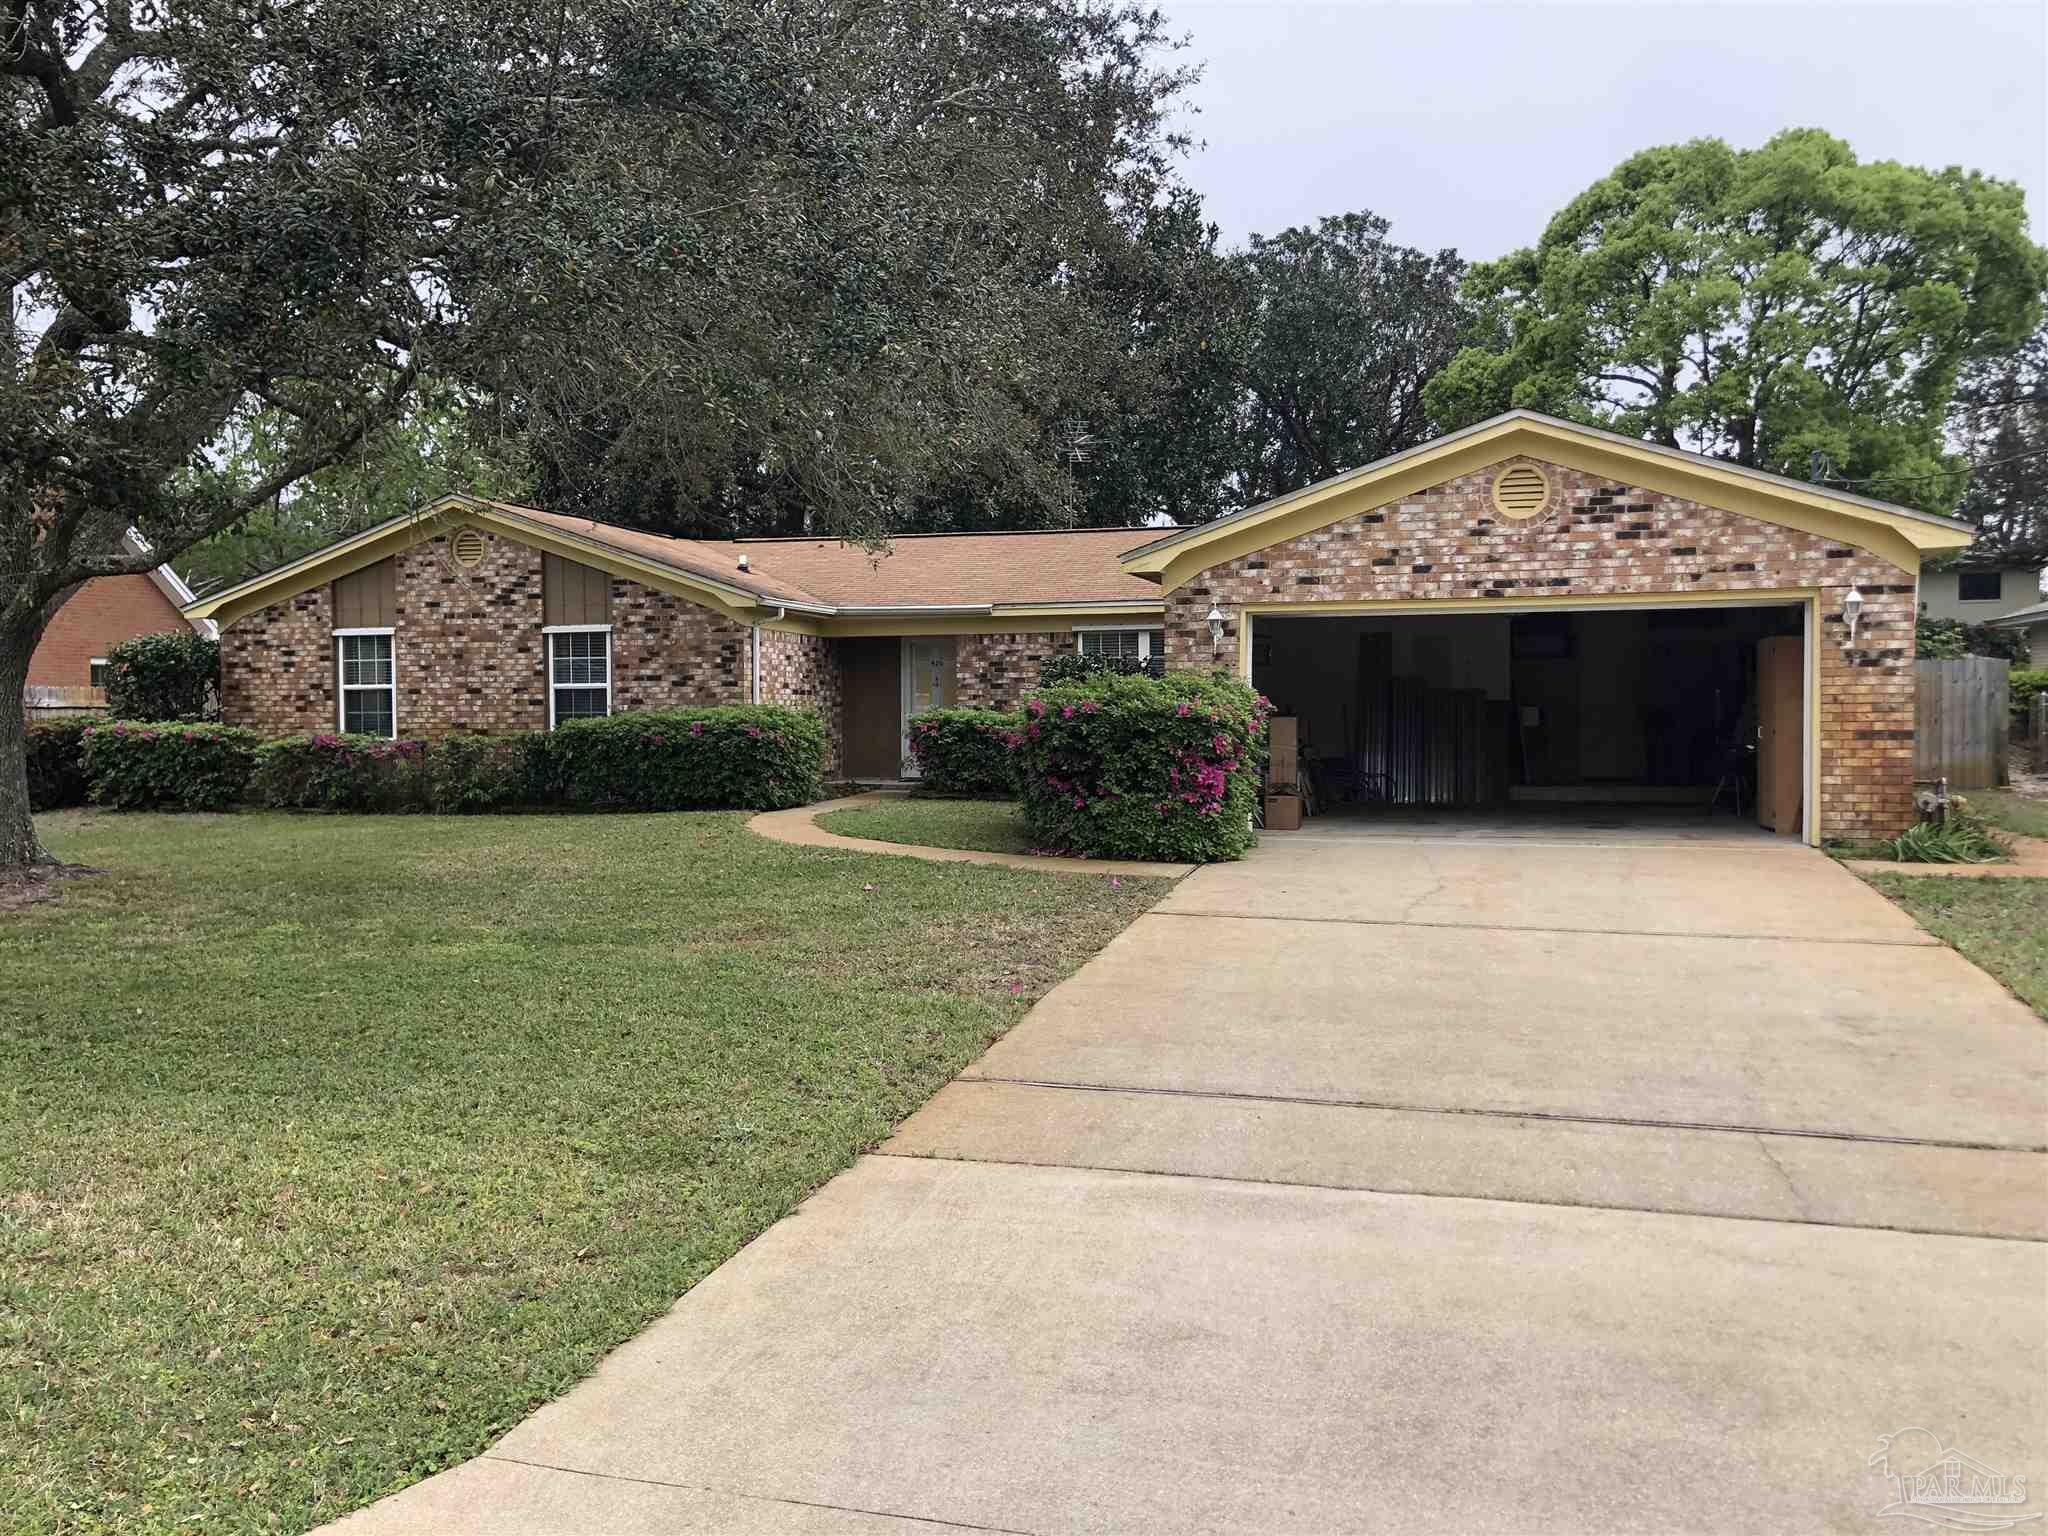 420 DOLPHIN ST, Gulf Breeze, Florida 32561, 4 Bedrooms Bedrooms, ,2 BathroomsBathrooms,Single Family,For Sale,420 DOLPHIN ST,1,587070